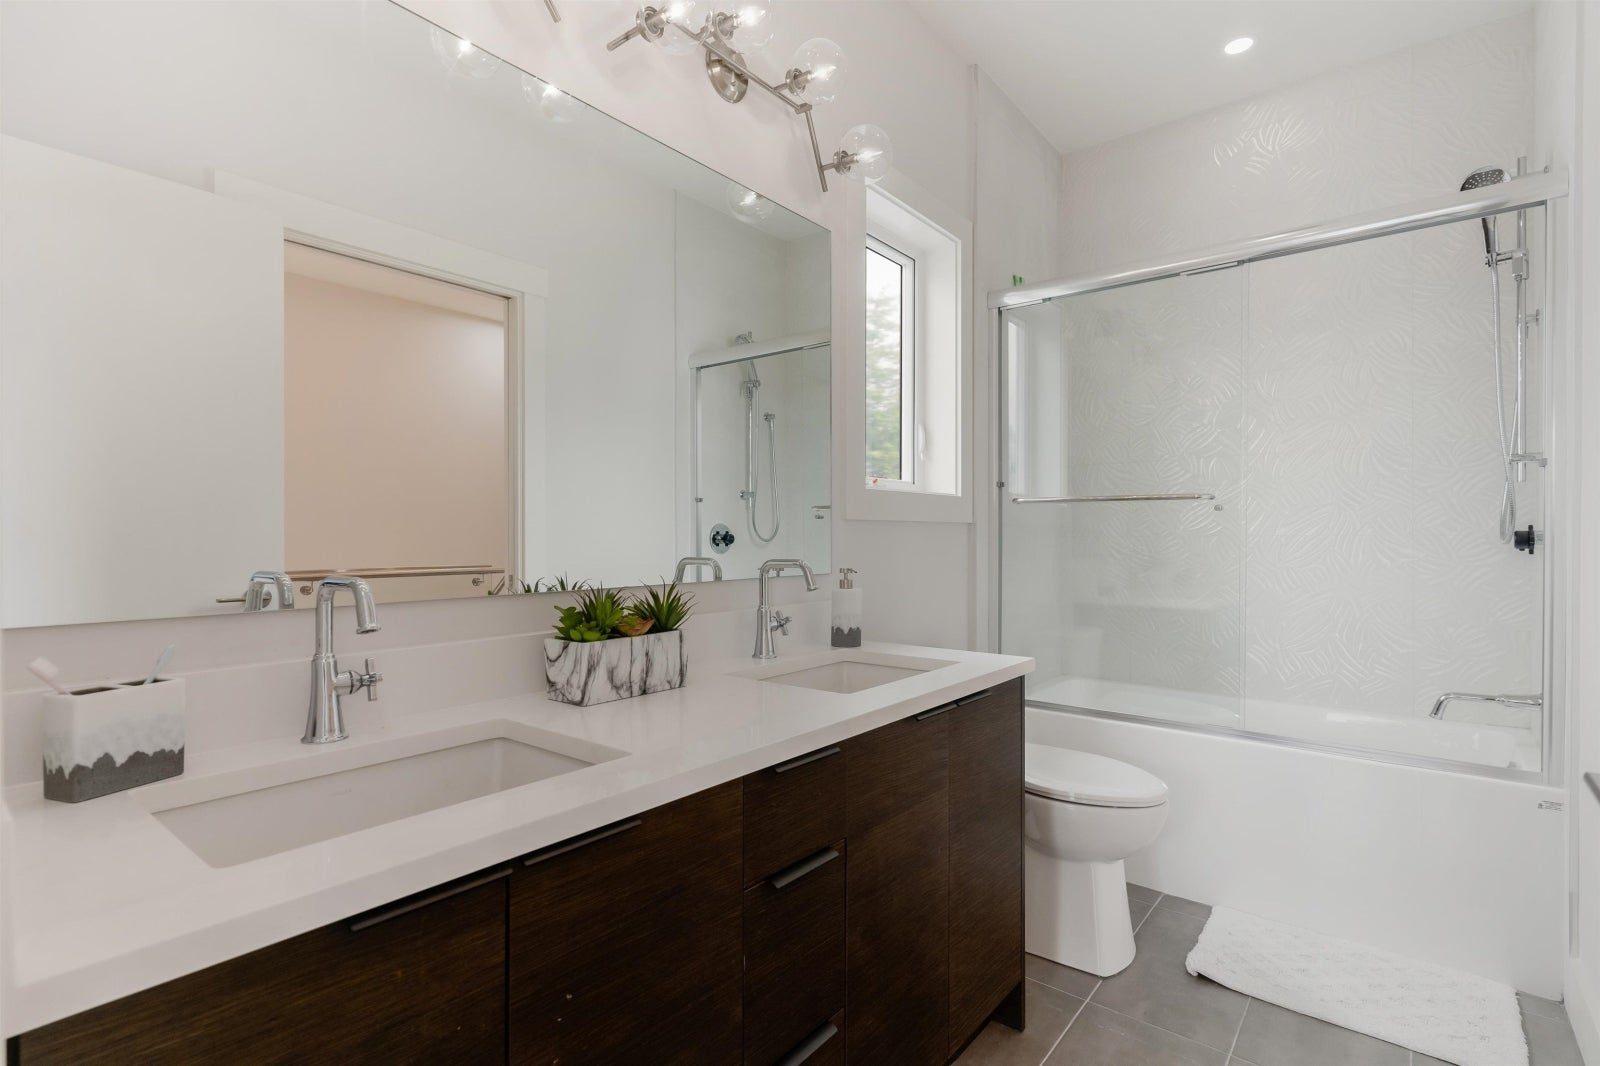 TH 1 230-232 E 8TH STREET - Central Lonsdale Townhouse for sale, 3 Bedrooms (R2610807) #13